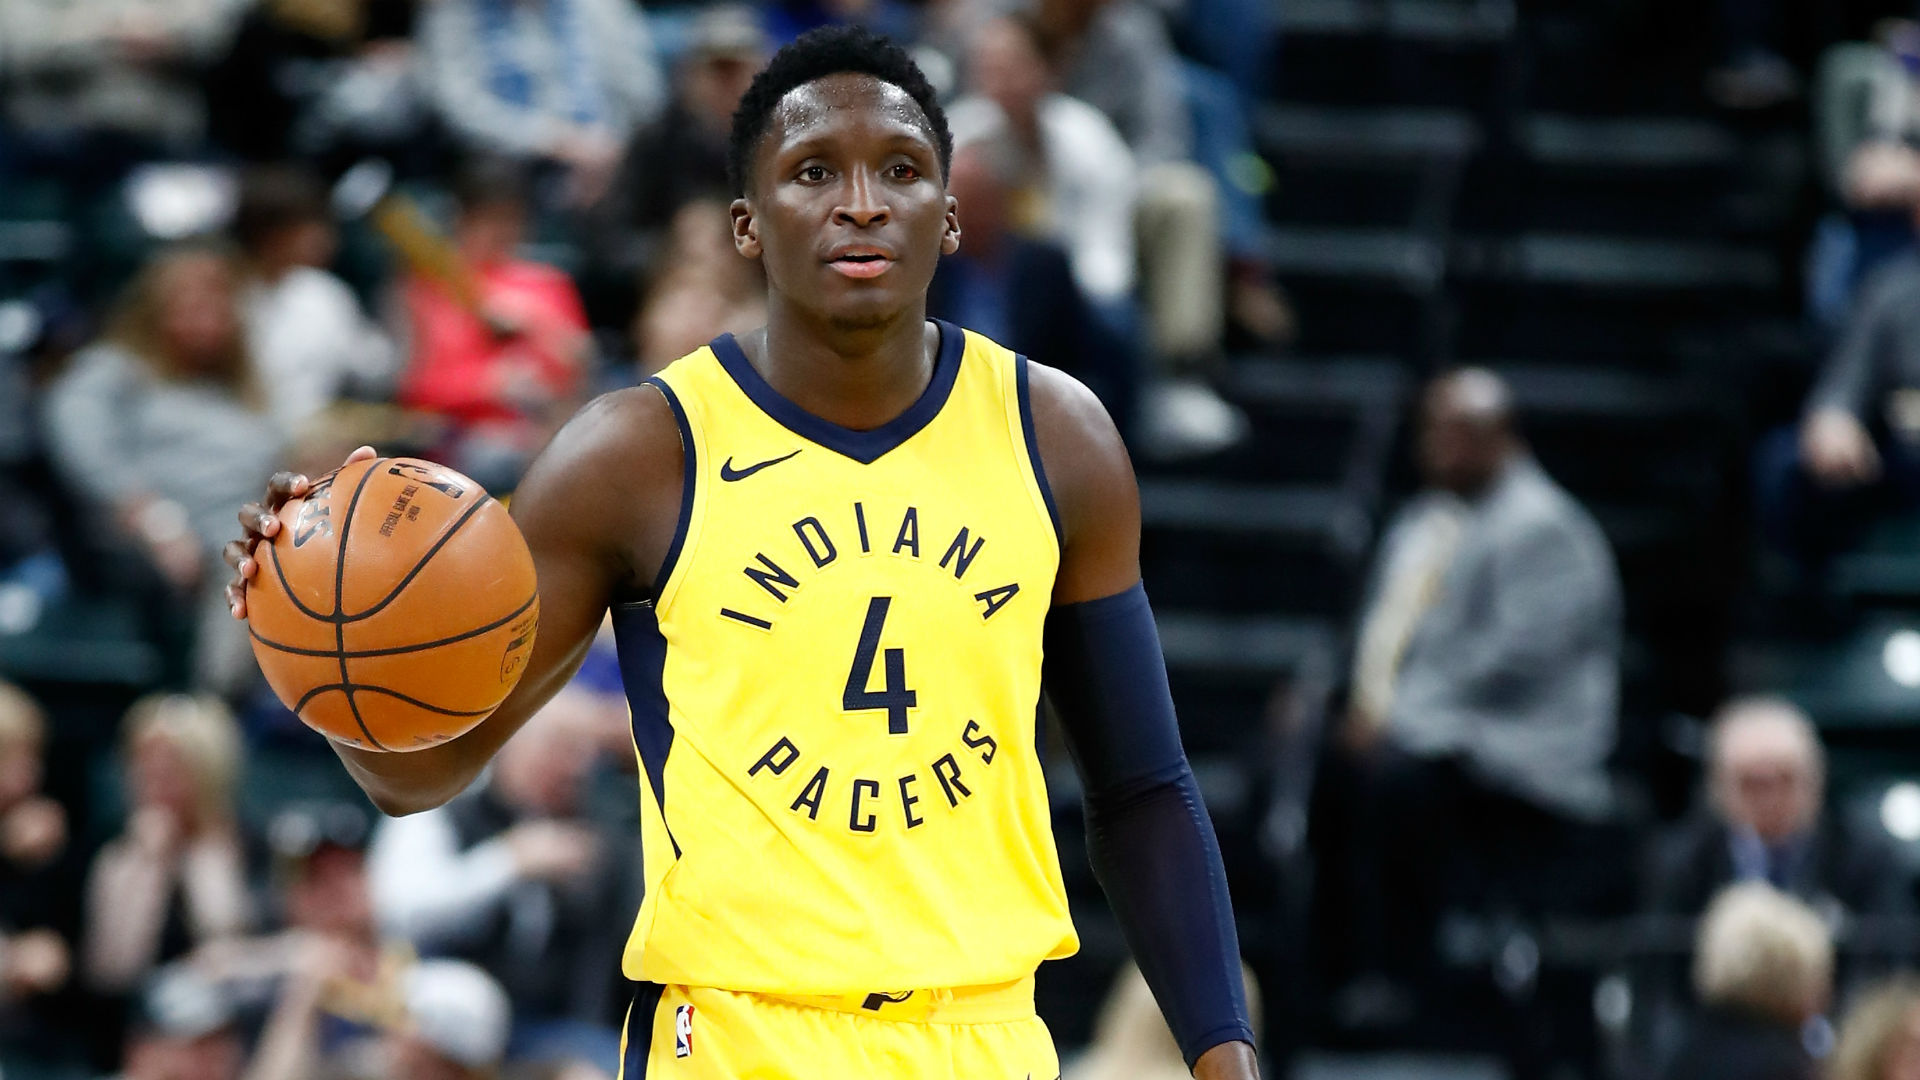 Victor Oladipo injury update: Pacers guard will start vs. Bucks